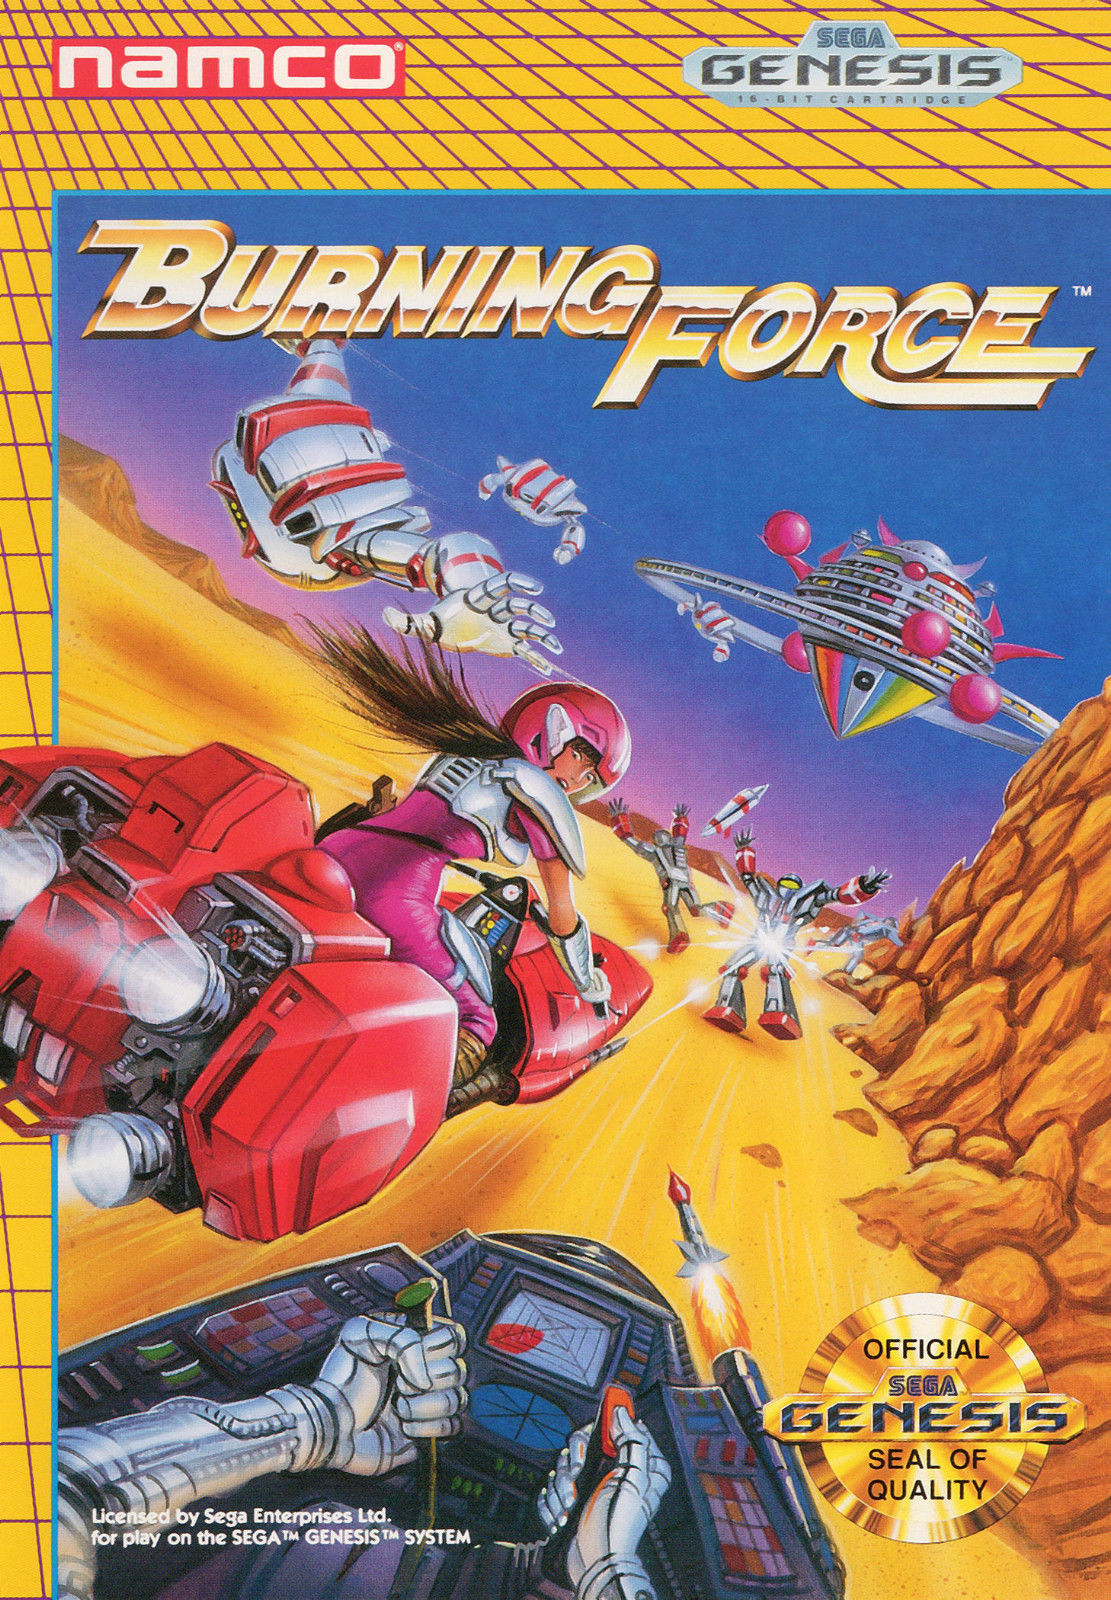 File:Burning Force MD cover.jpg